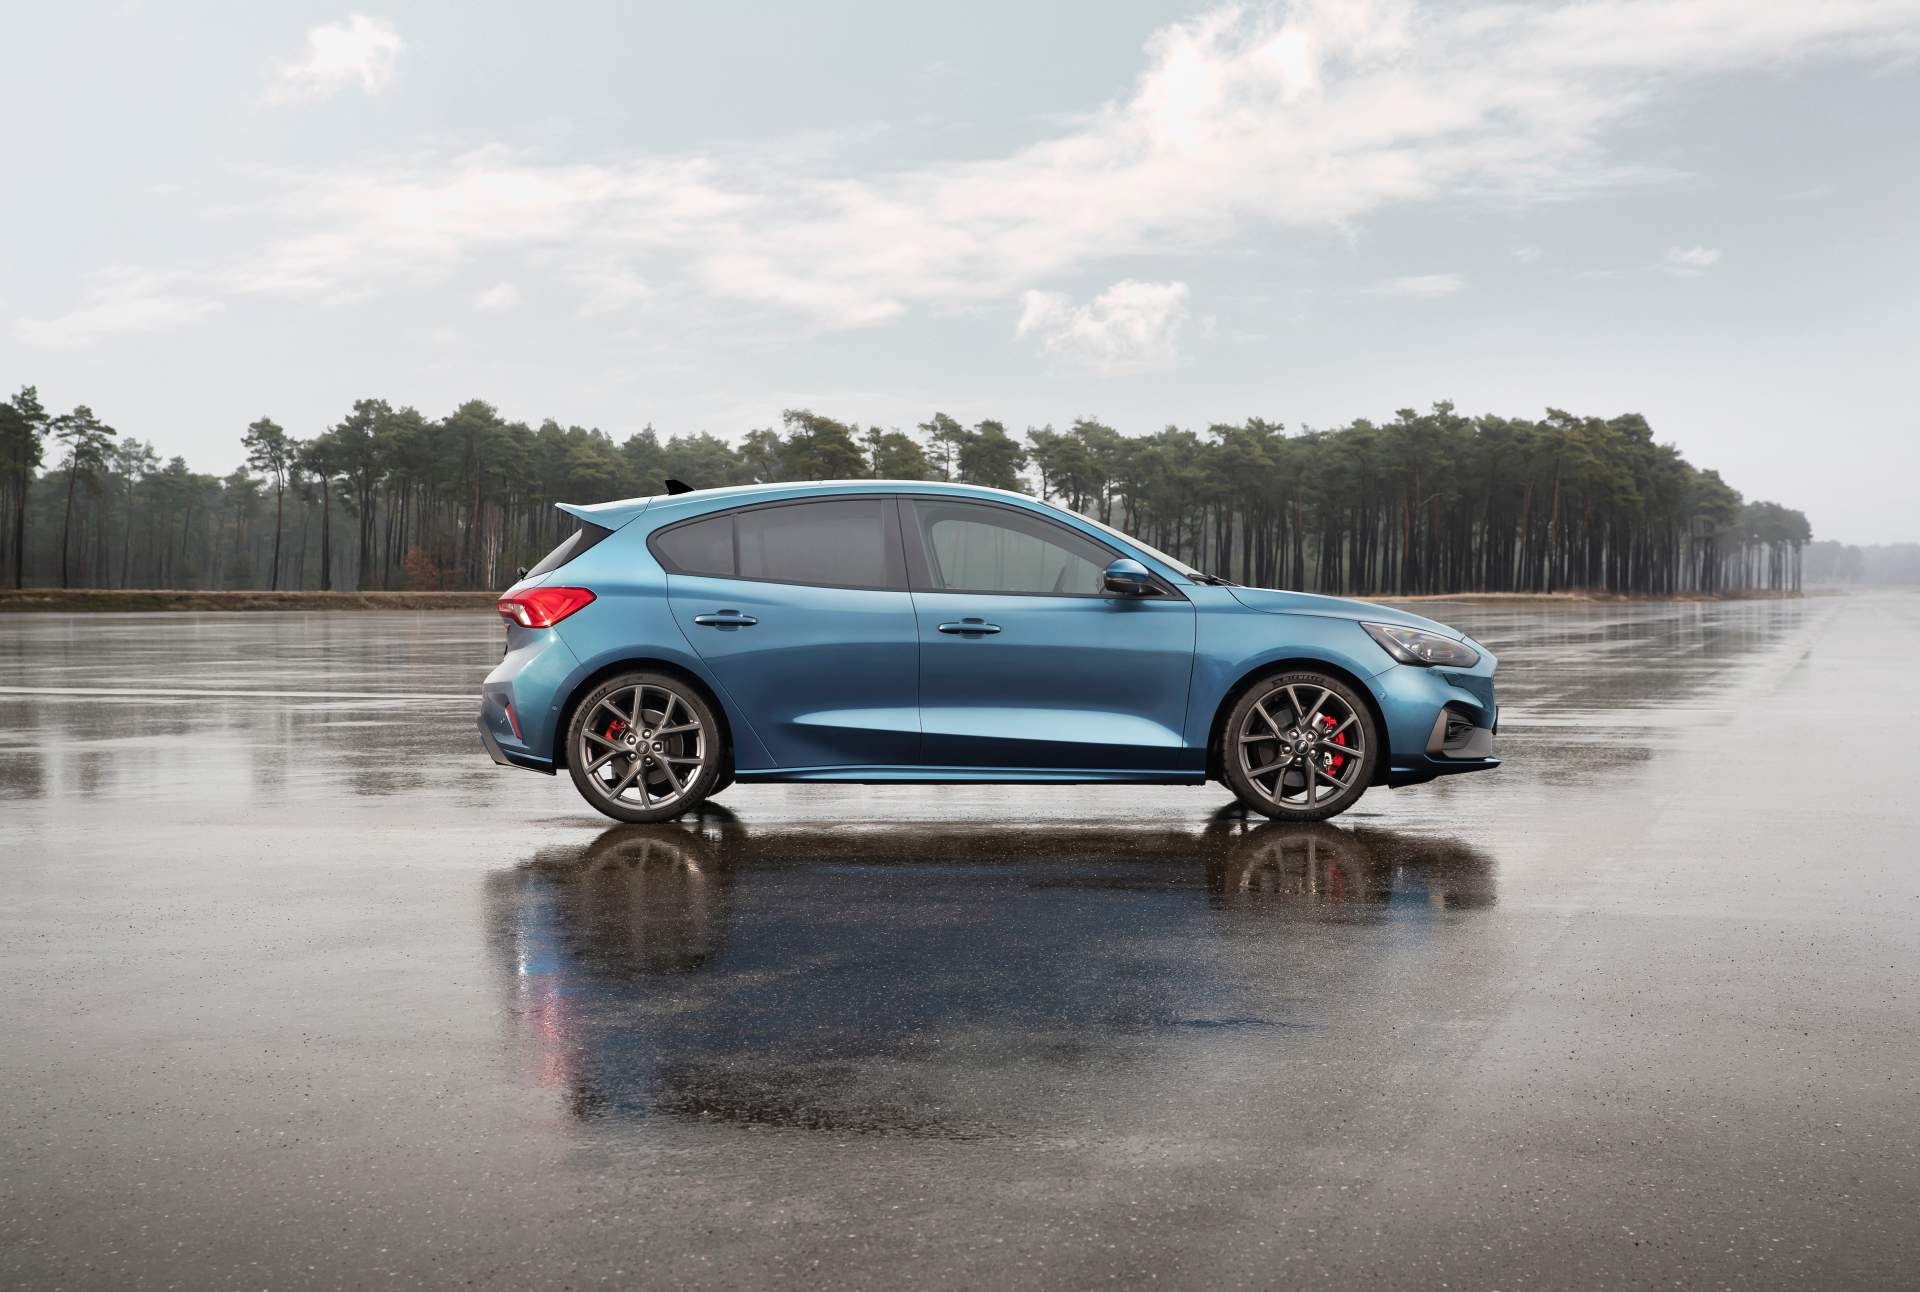 Diesel 2019 Ford Focus St Is As Expensive As The Hyundai I30 N